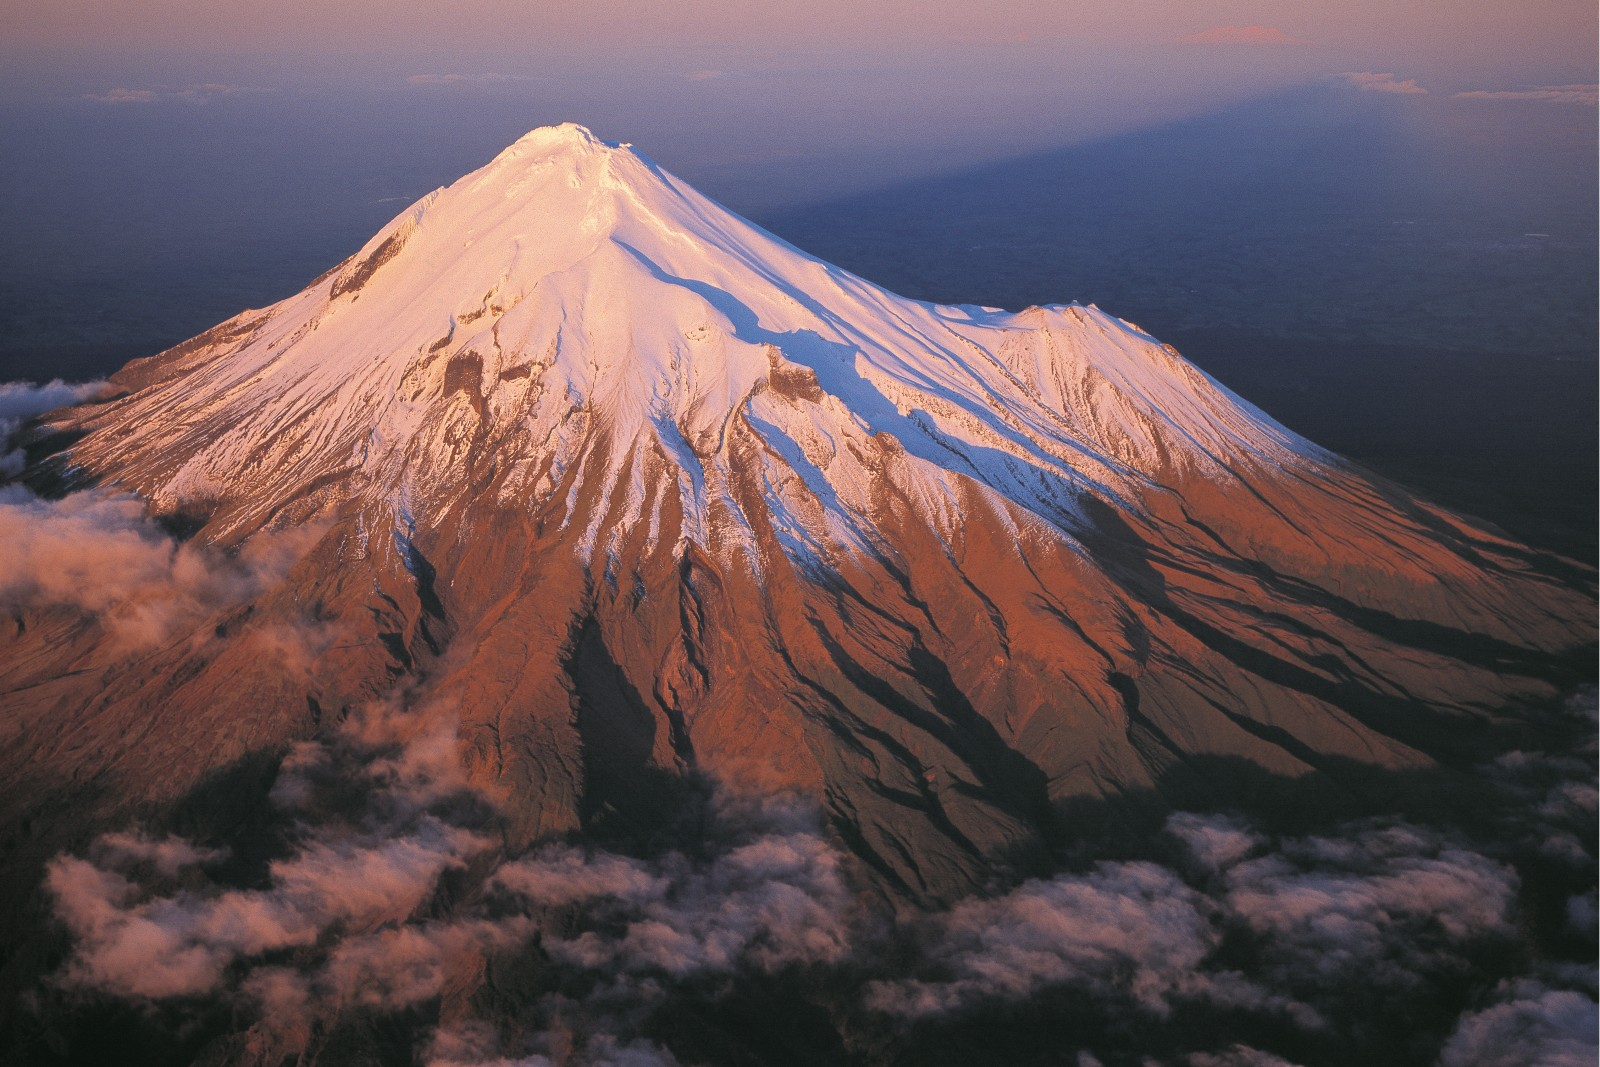 Beautiful but not benign, Mt Taranaki experiences a miserable climate. Rainfall is 7.5 m a year, and the average wind speed on top is 40 km/h. Alpine herbs extend up to about 1700 m, and between 1400 m and 1700 m is a band of tussock. Scrub and shrubland cover the slopes between the bottom of the tussock and the tree line at 1100 m. The last eruption was about 250 years ago, and it is considered unlikely the mountain has forsaken its tantrums permanently.